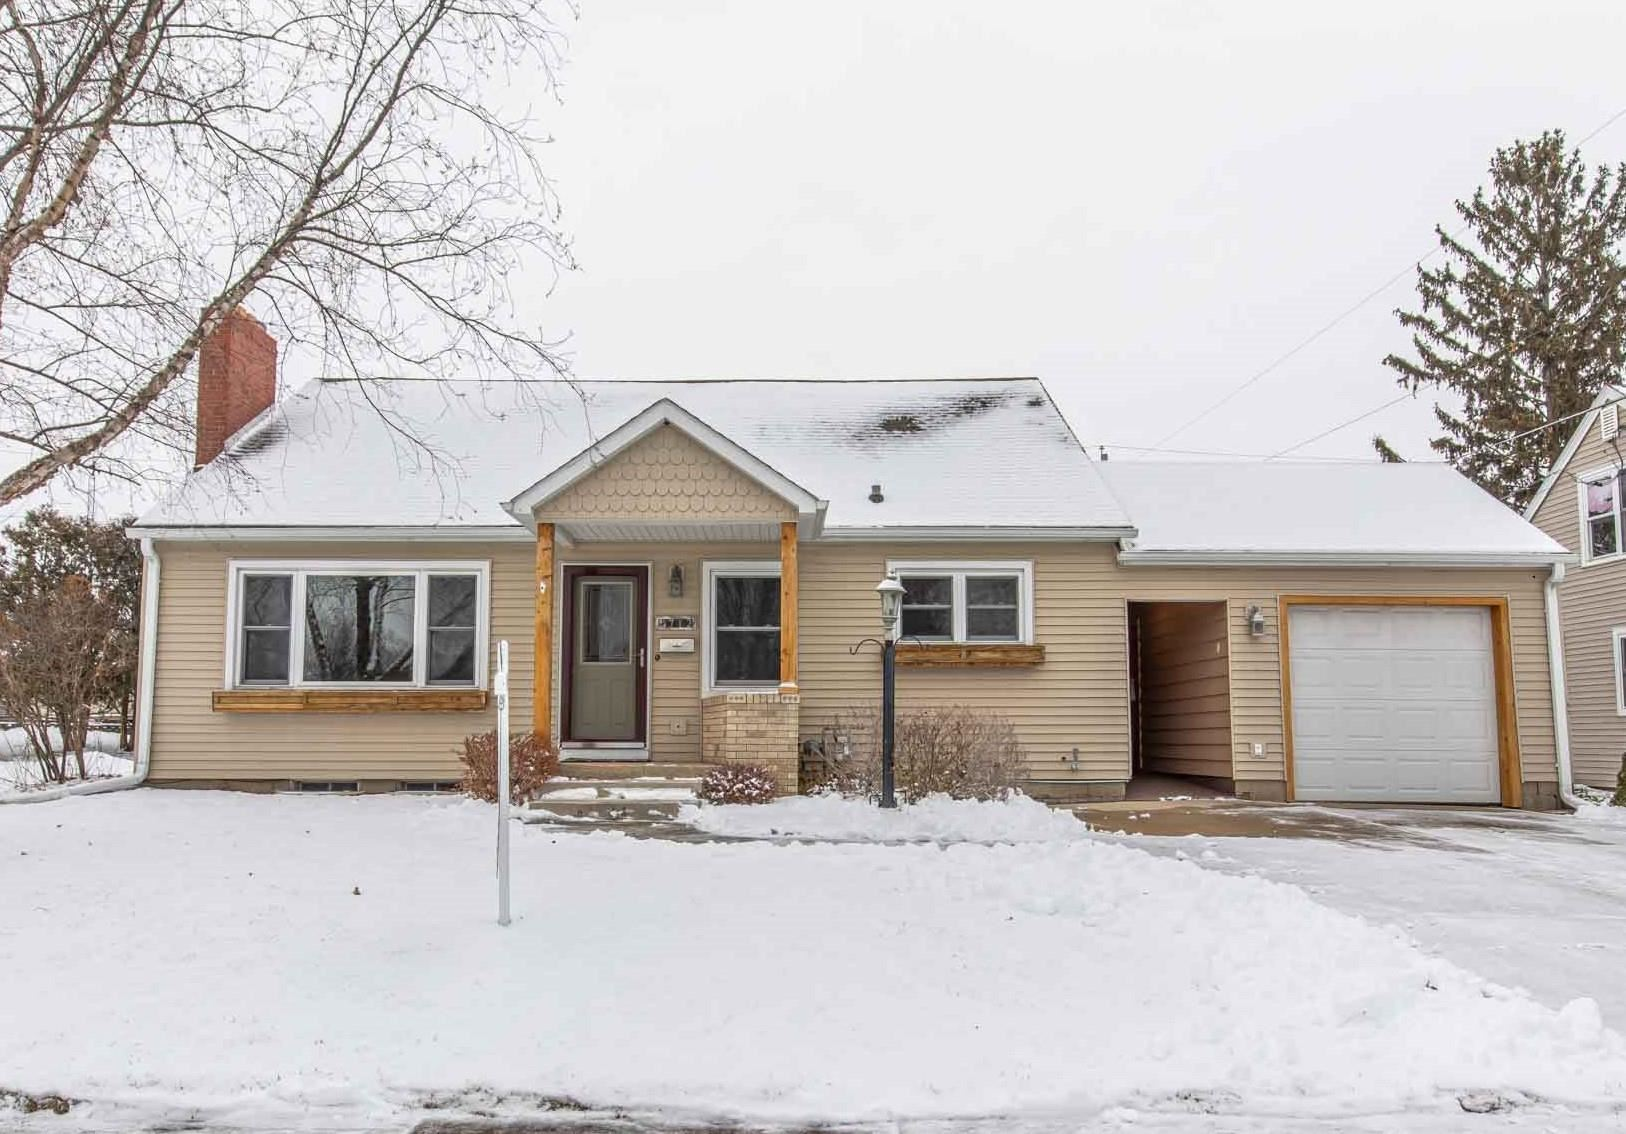 712 27th Ave, Monroe, WI 53566 - #: 1920948